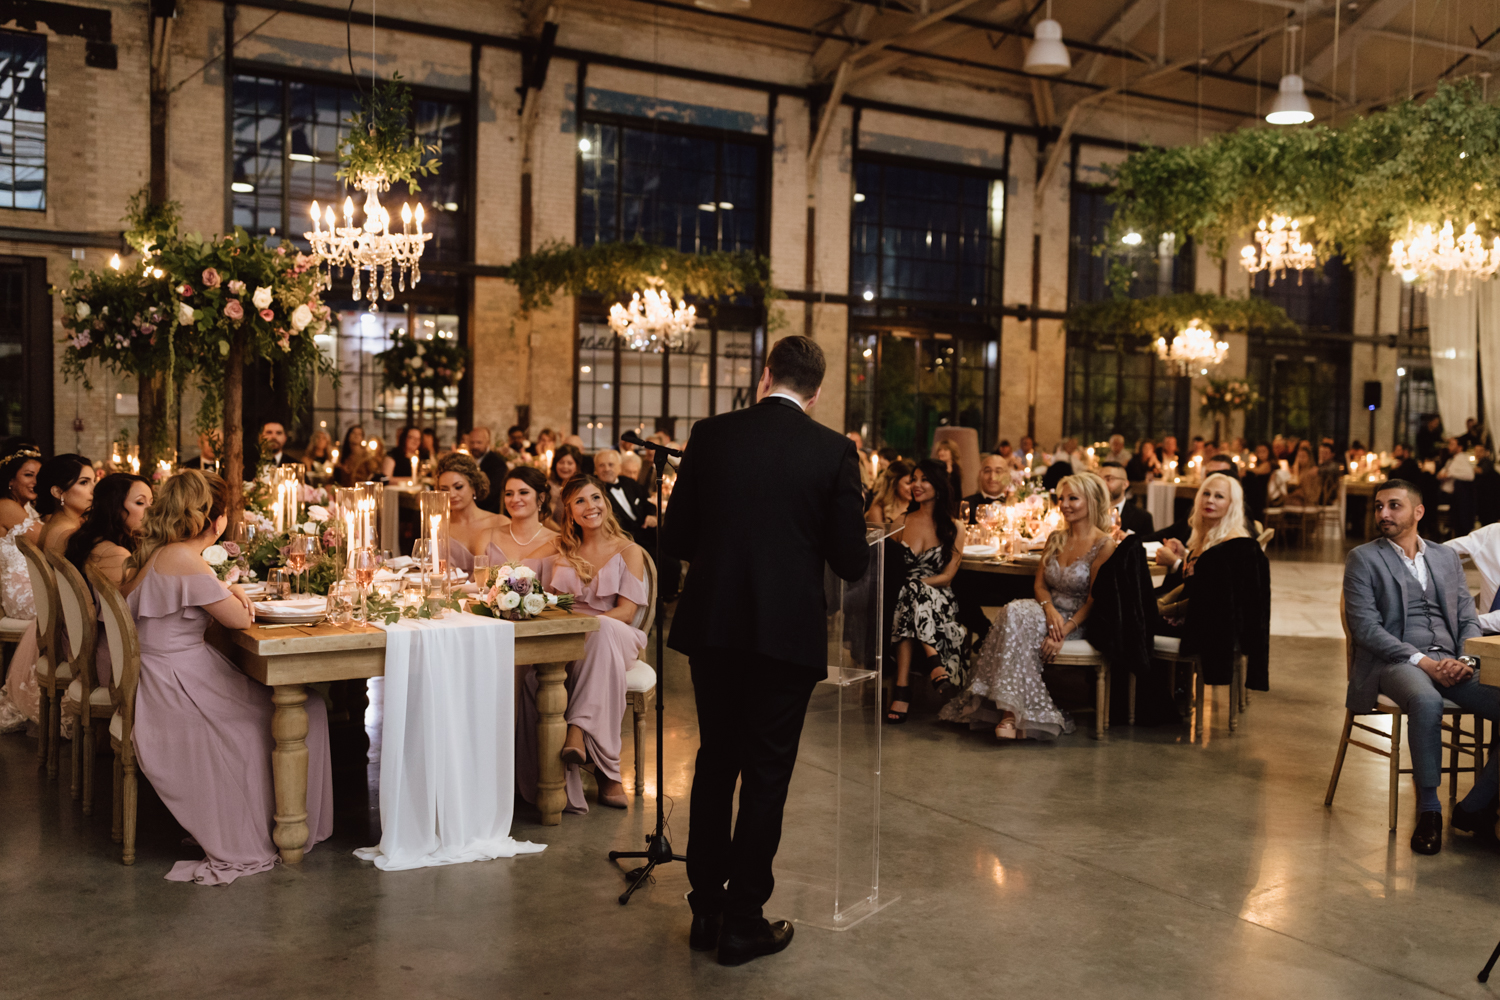 Classic wedding at the Horticulture building